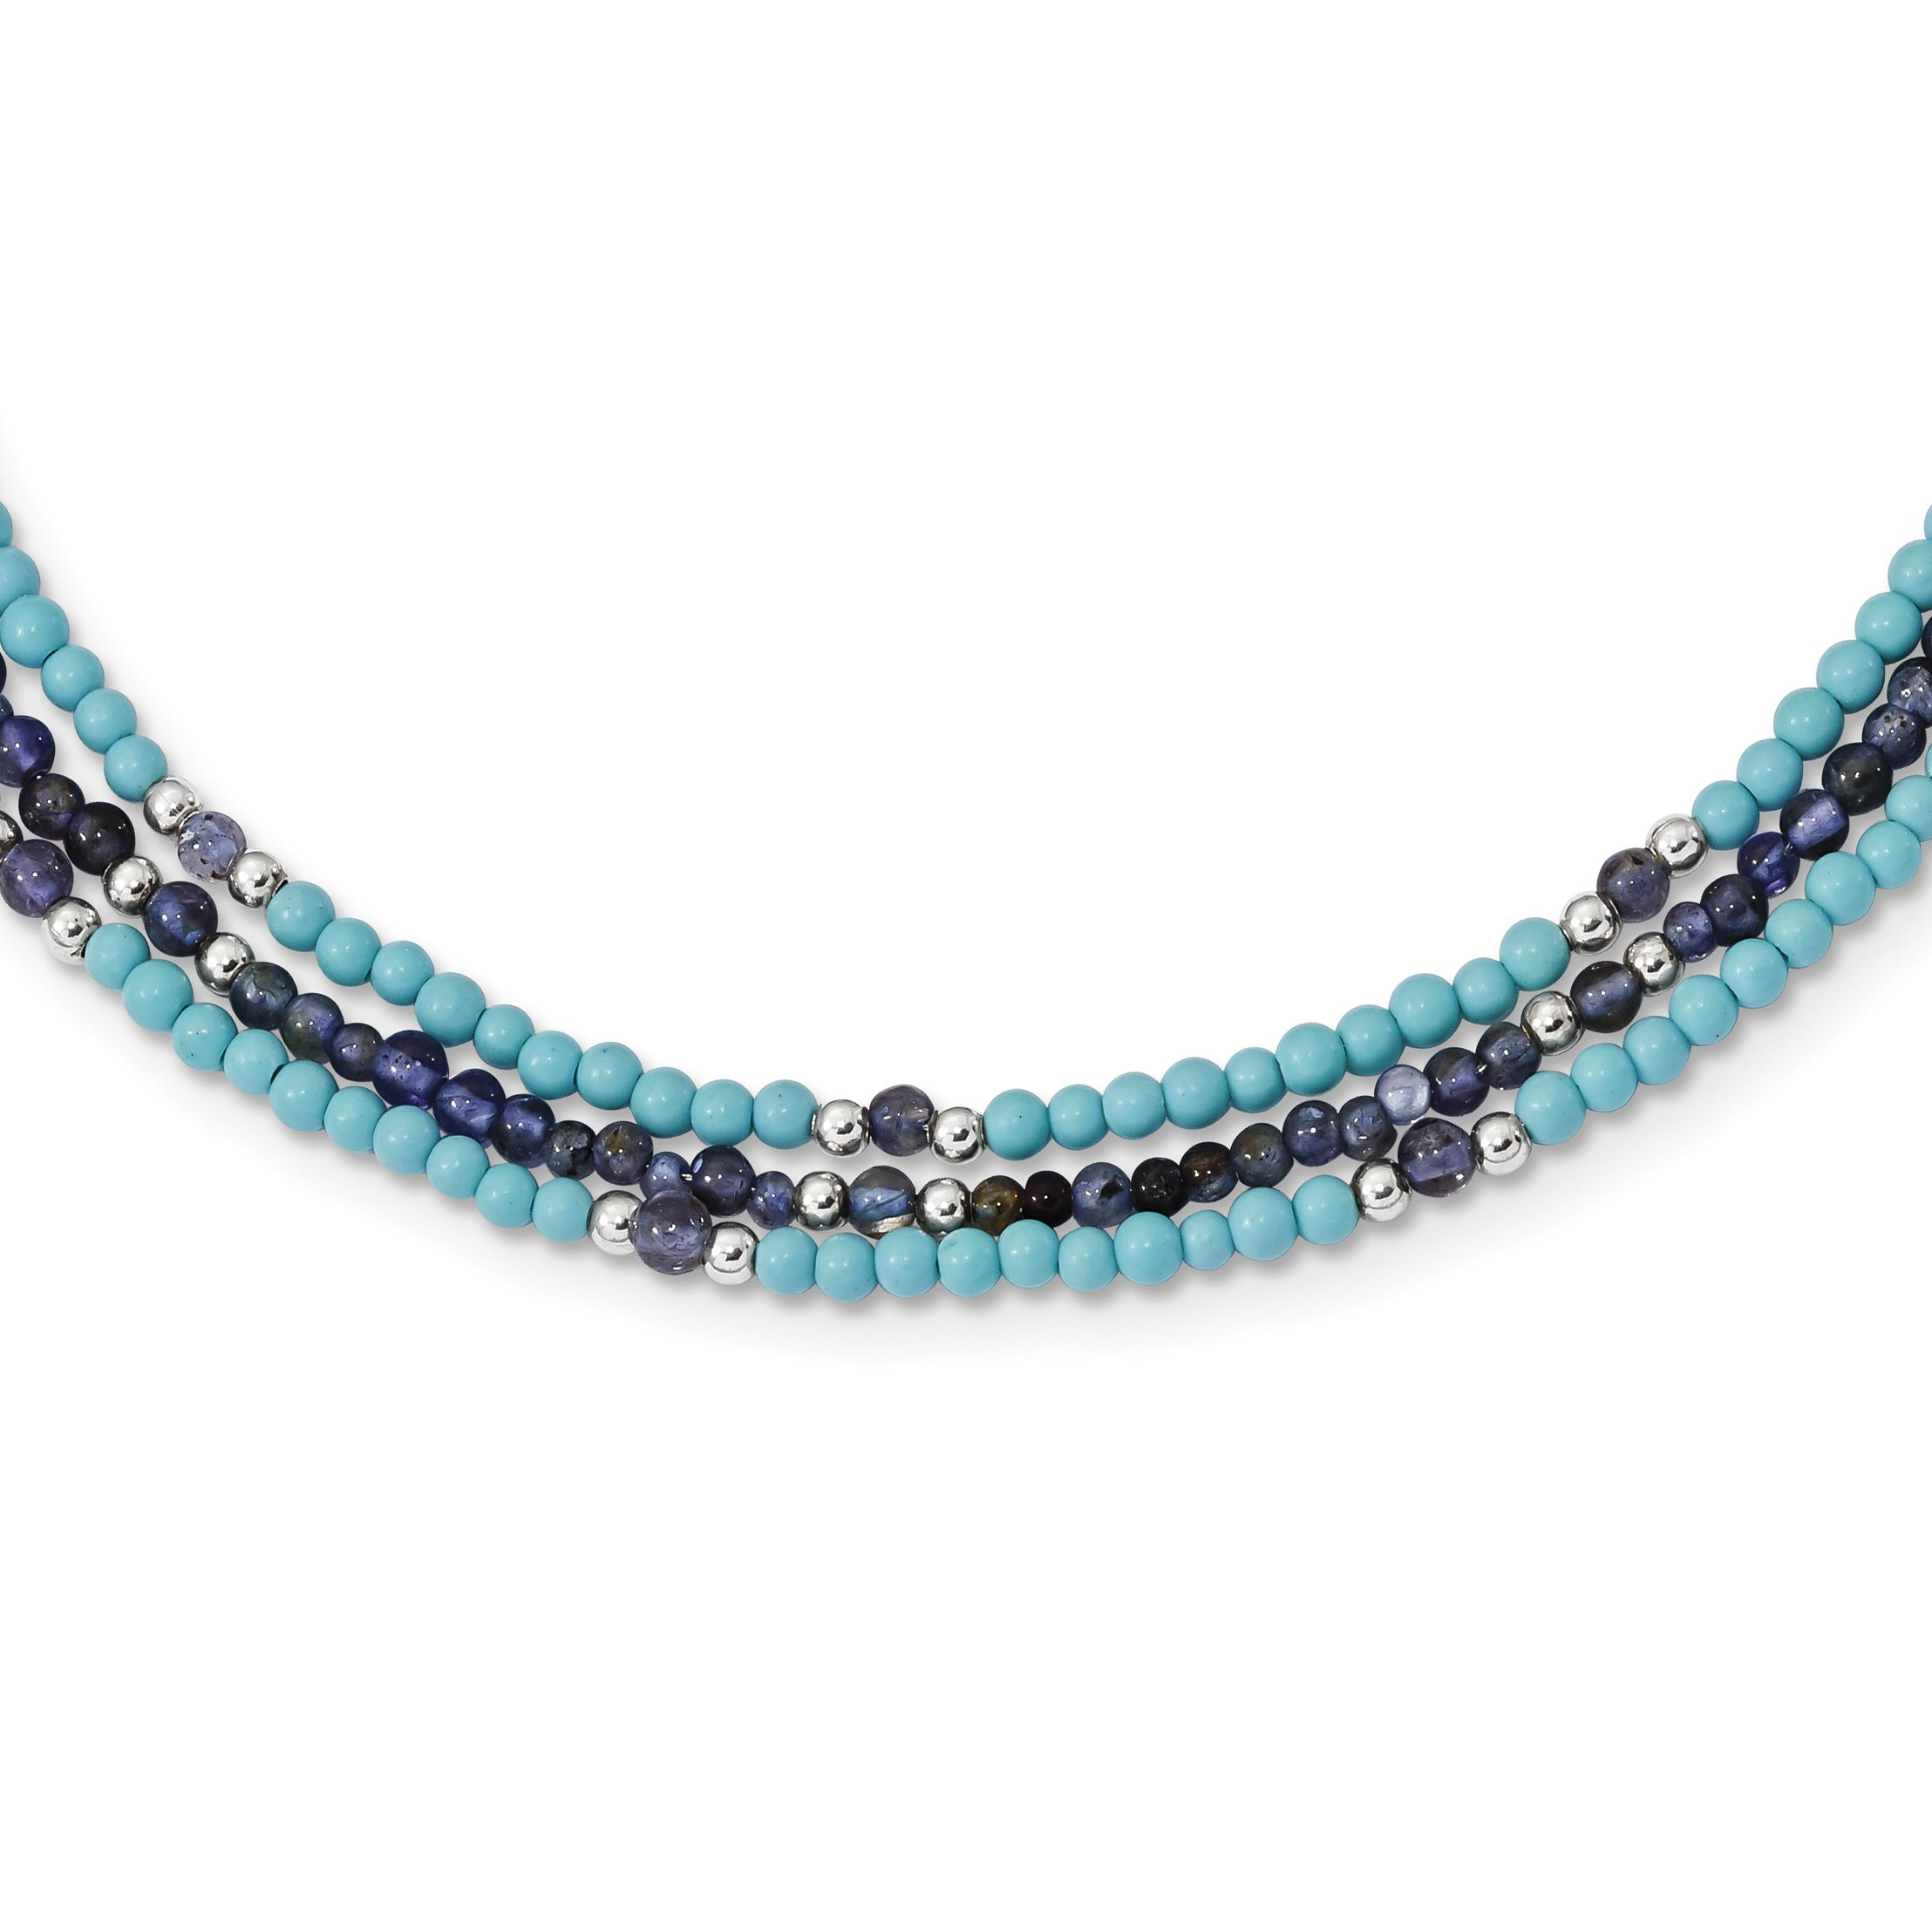 ICE CARATS 925 Sterling Silver Iolite/lapis Quartz/recon. Blue Turquoise 3 Strand 2 Inch Extension Chain Necklace Natural Stone Fine Jewelry Gift For Women Heart